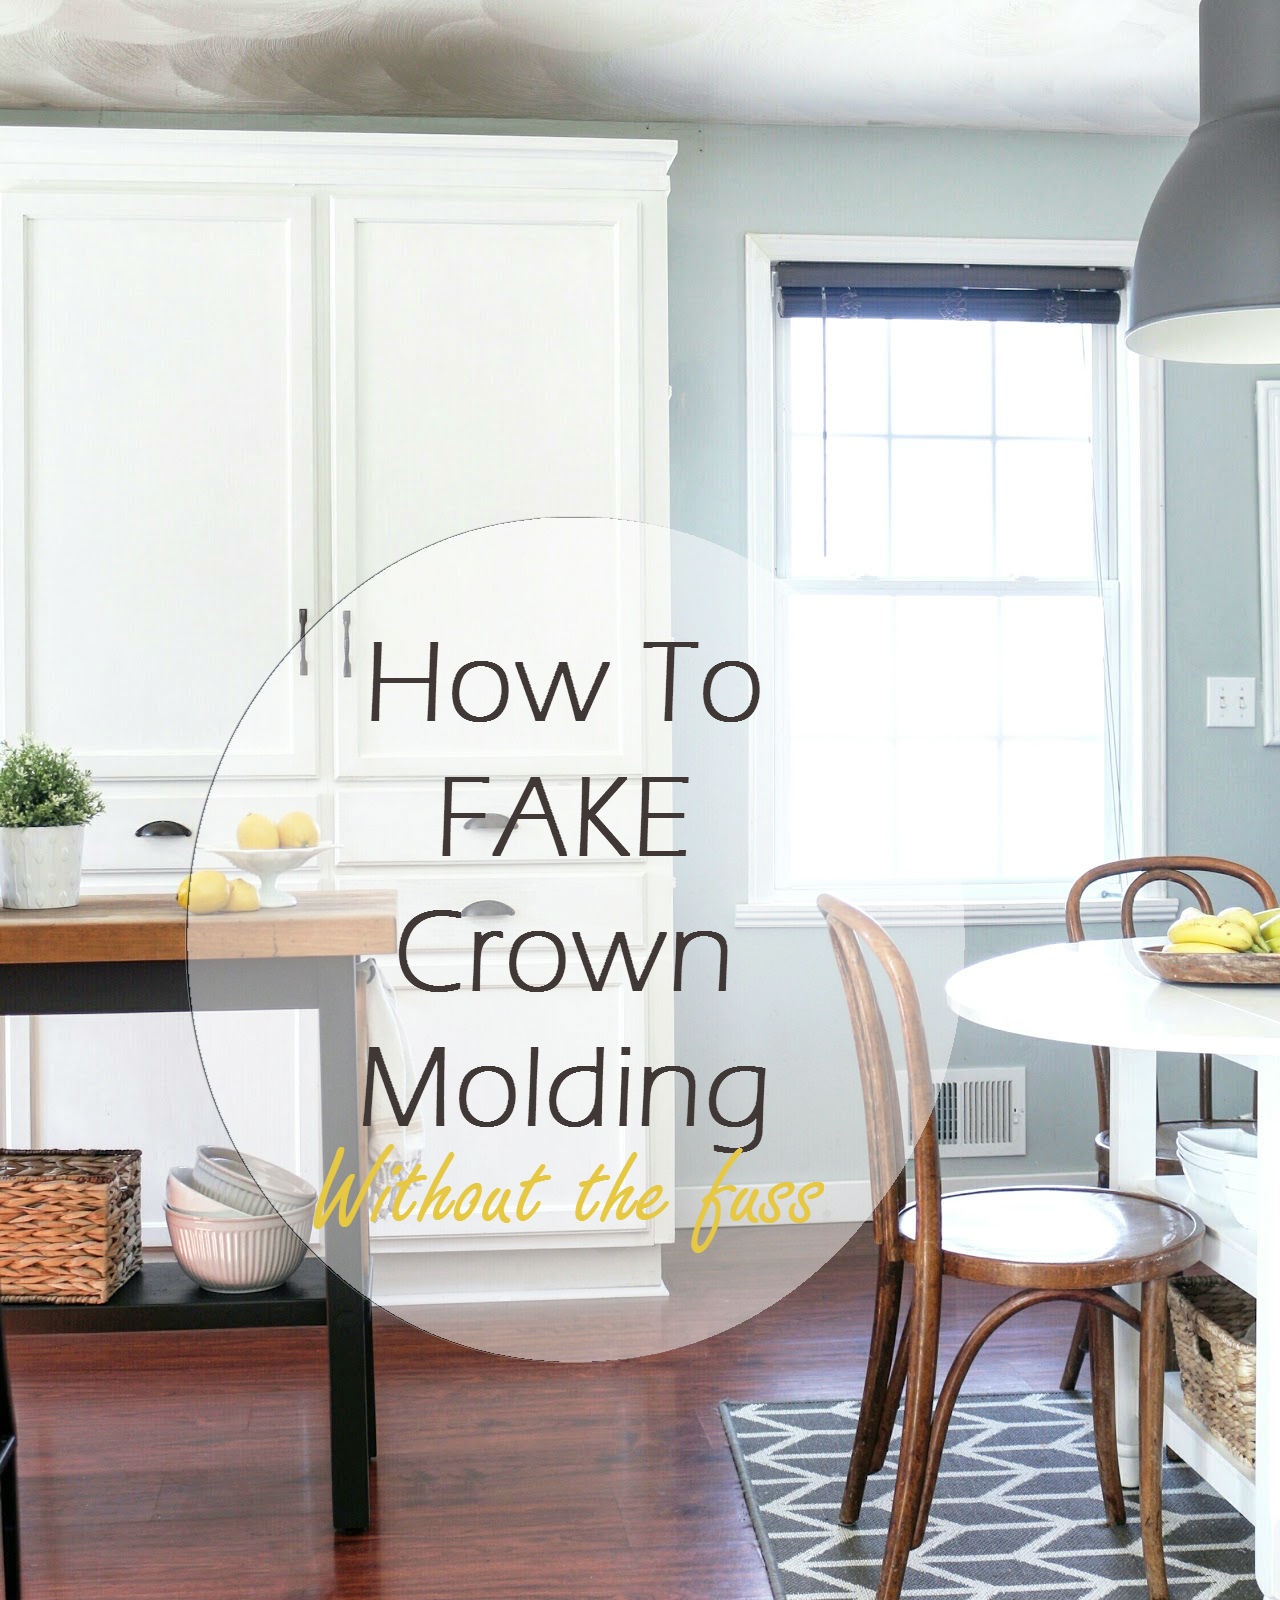 My diy kitchen cabinet crown molding how to fake the look without the fuss